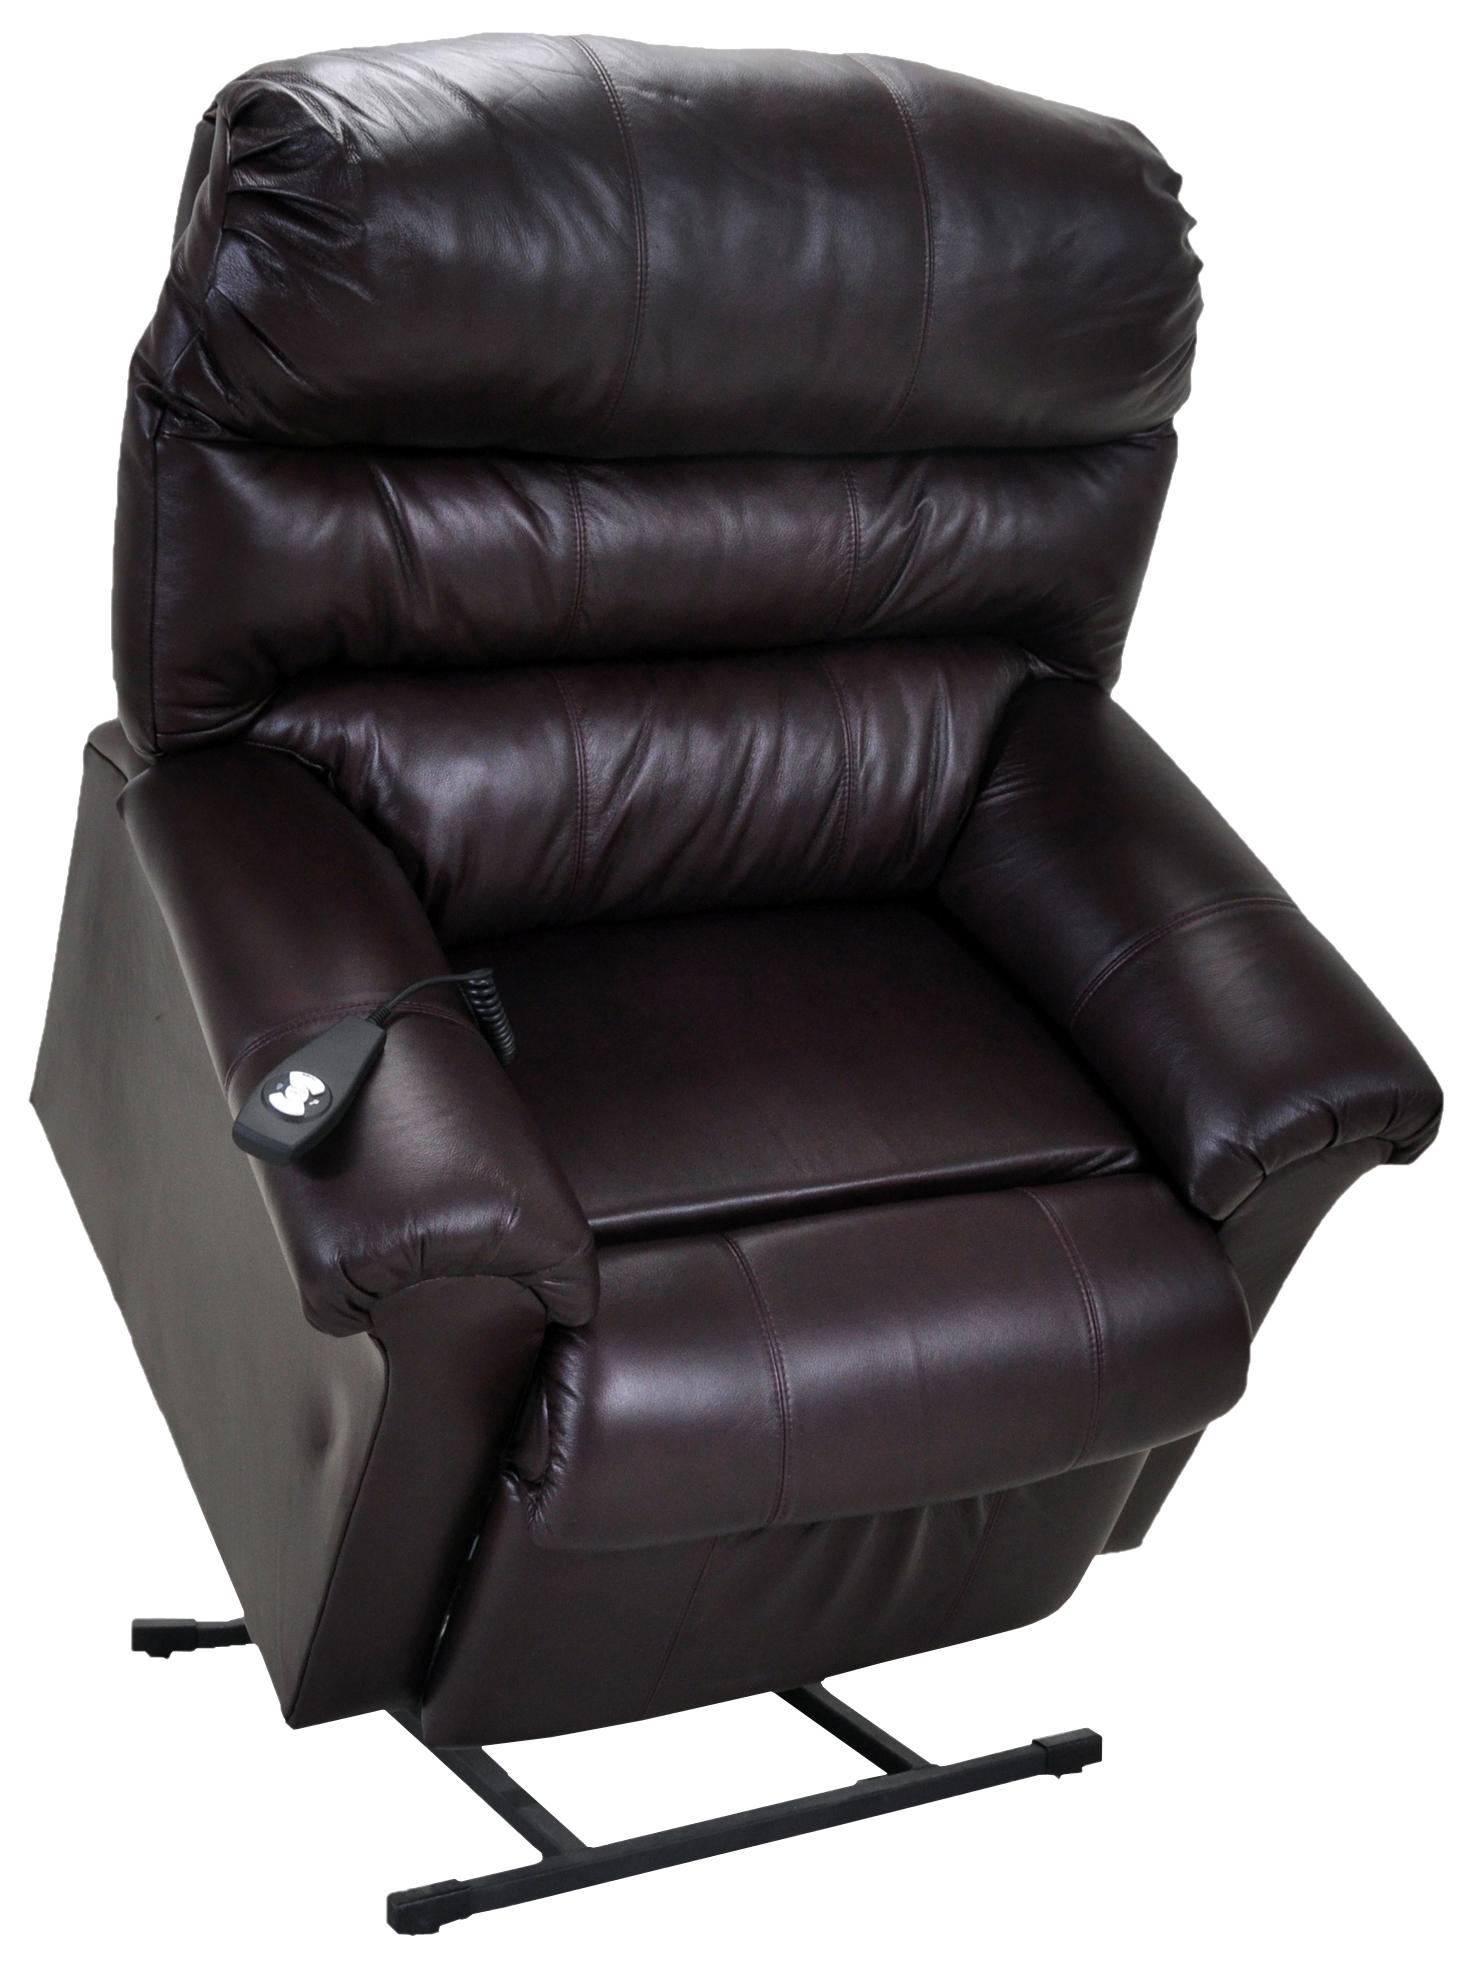 Franklin Lift and Power Recliners Chocolate Leather Lift Chair - Item Number 498 O  sc 1 st  Great American Home Store : leather power recliner chair - islam-shia.org